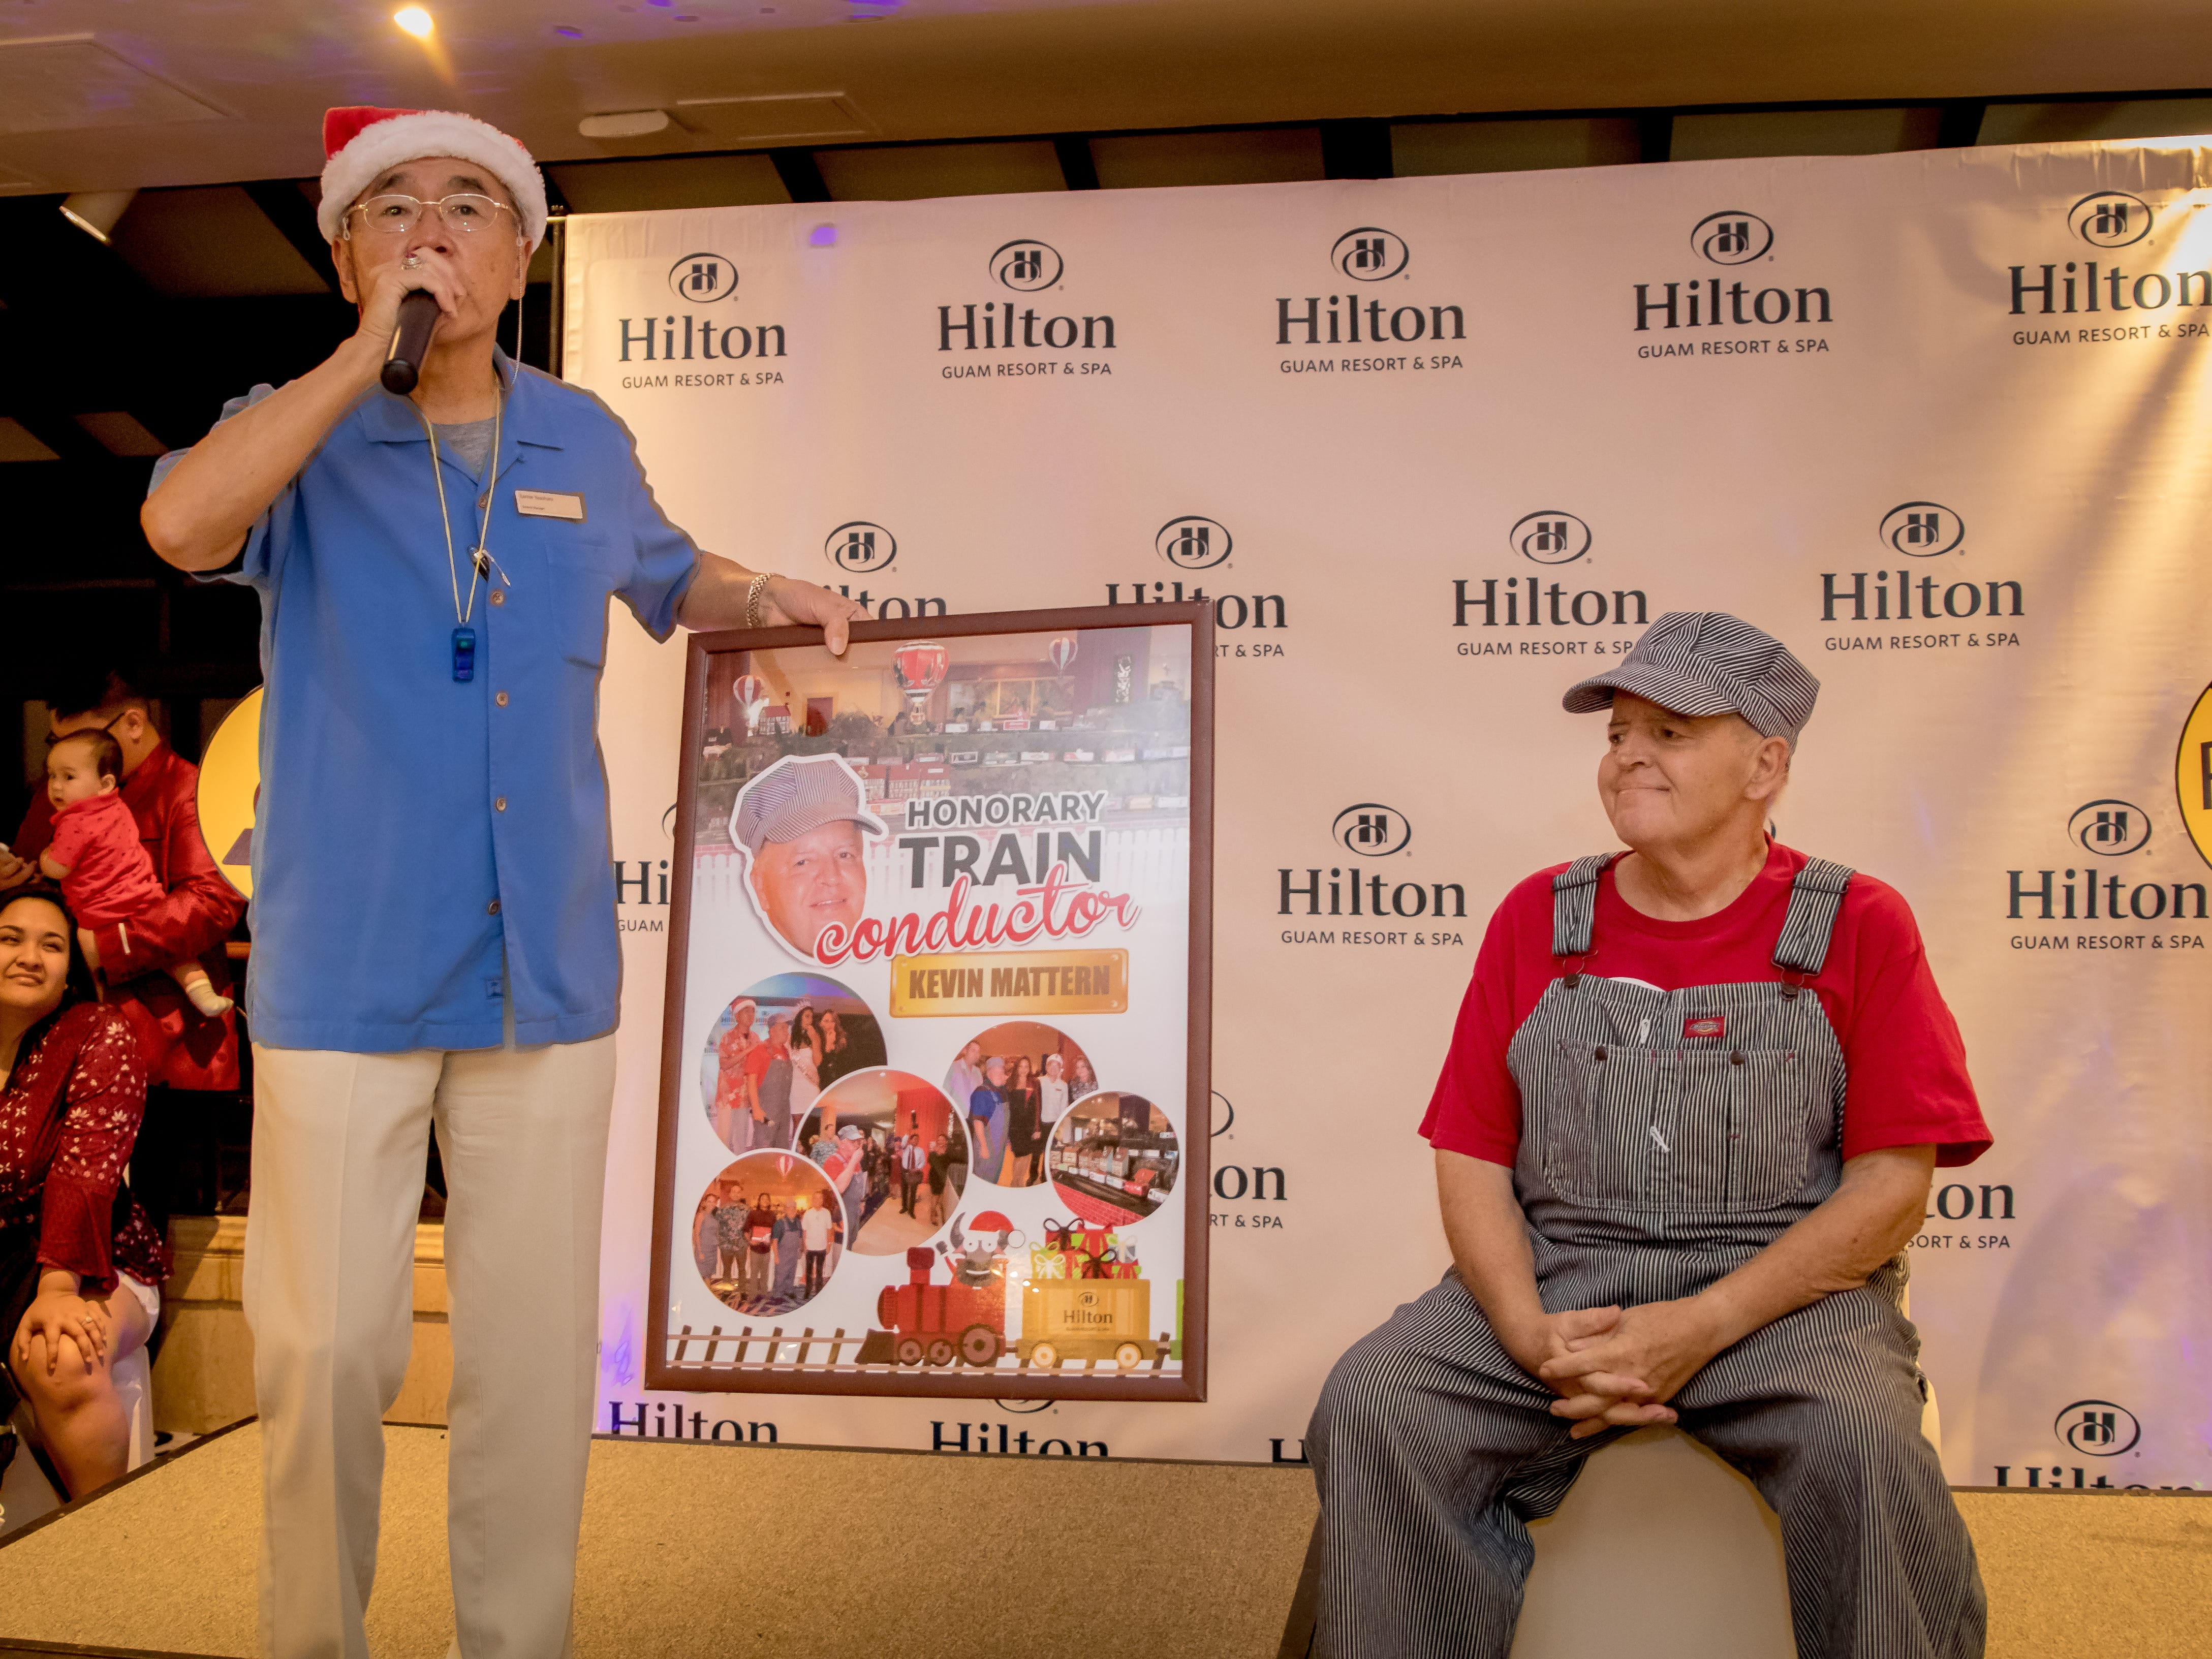 Kevin Mattern of Hilton Guam Resort and Spa Engineering Department is recognize as the Honorary Train Conductor.